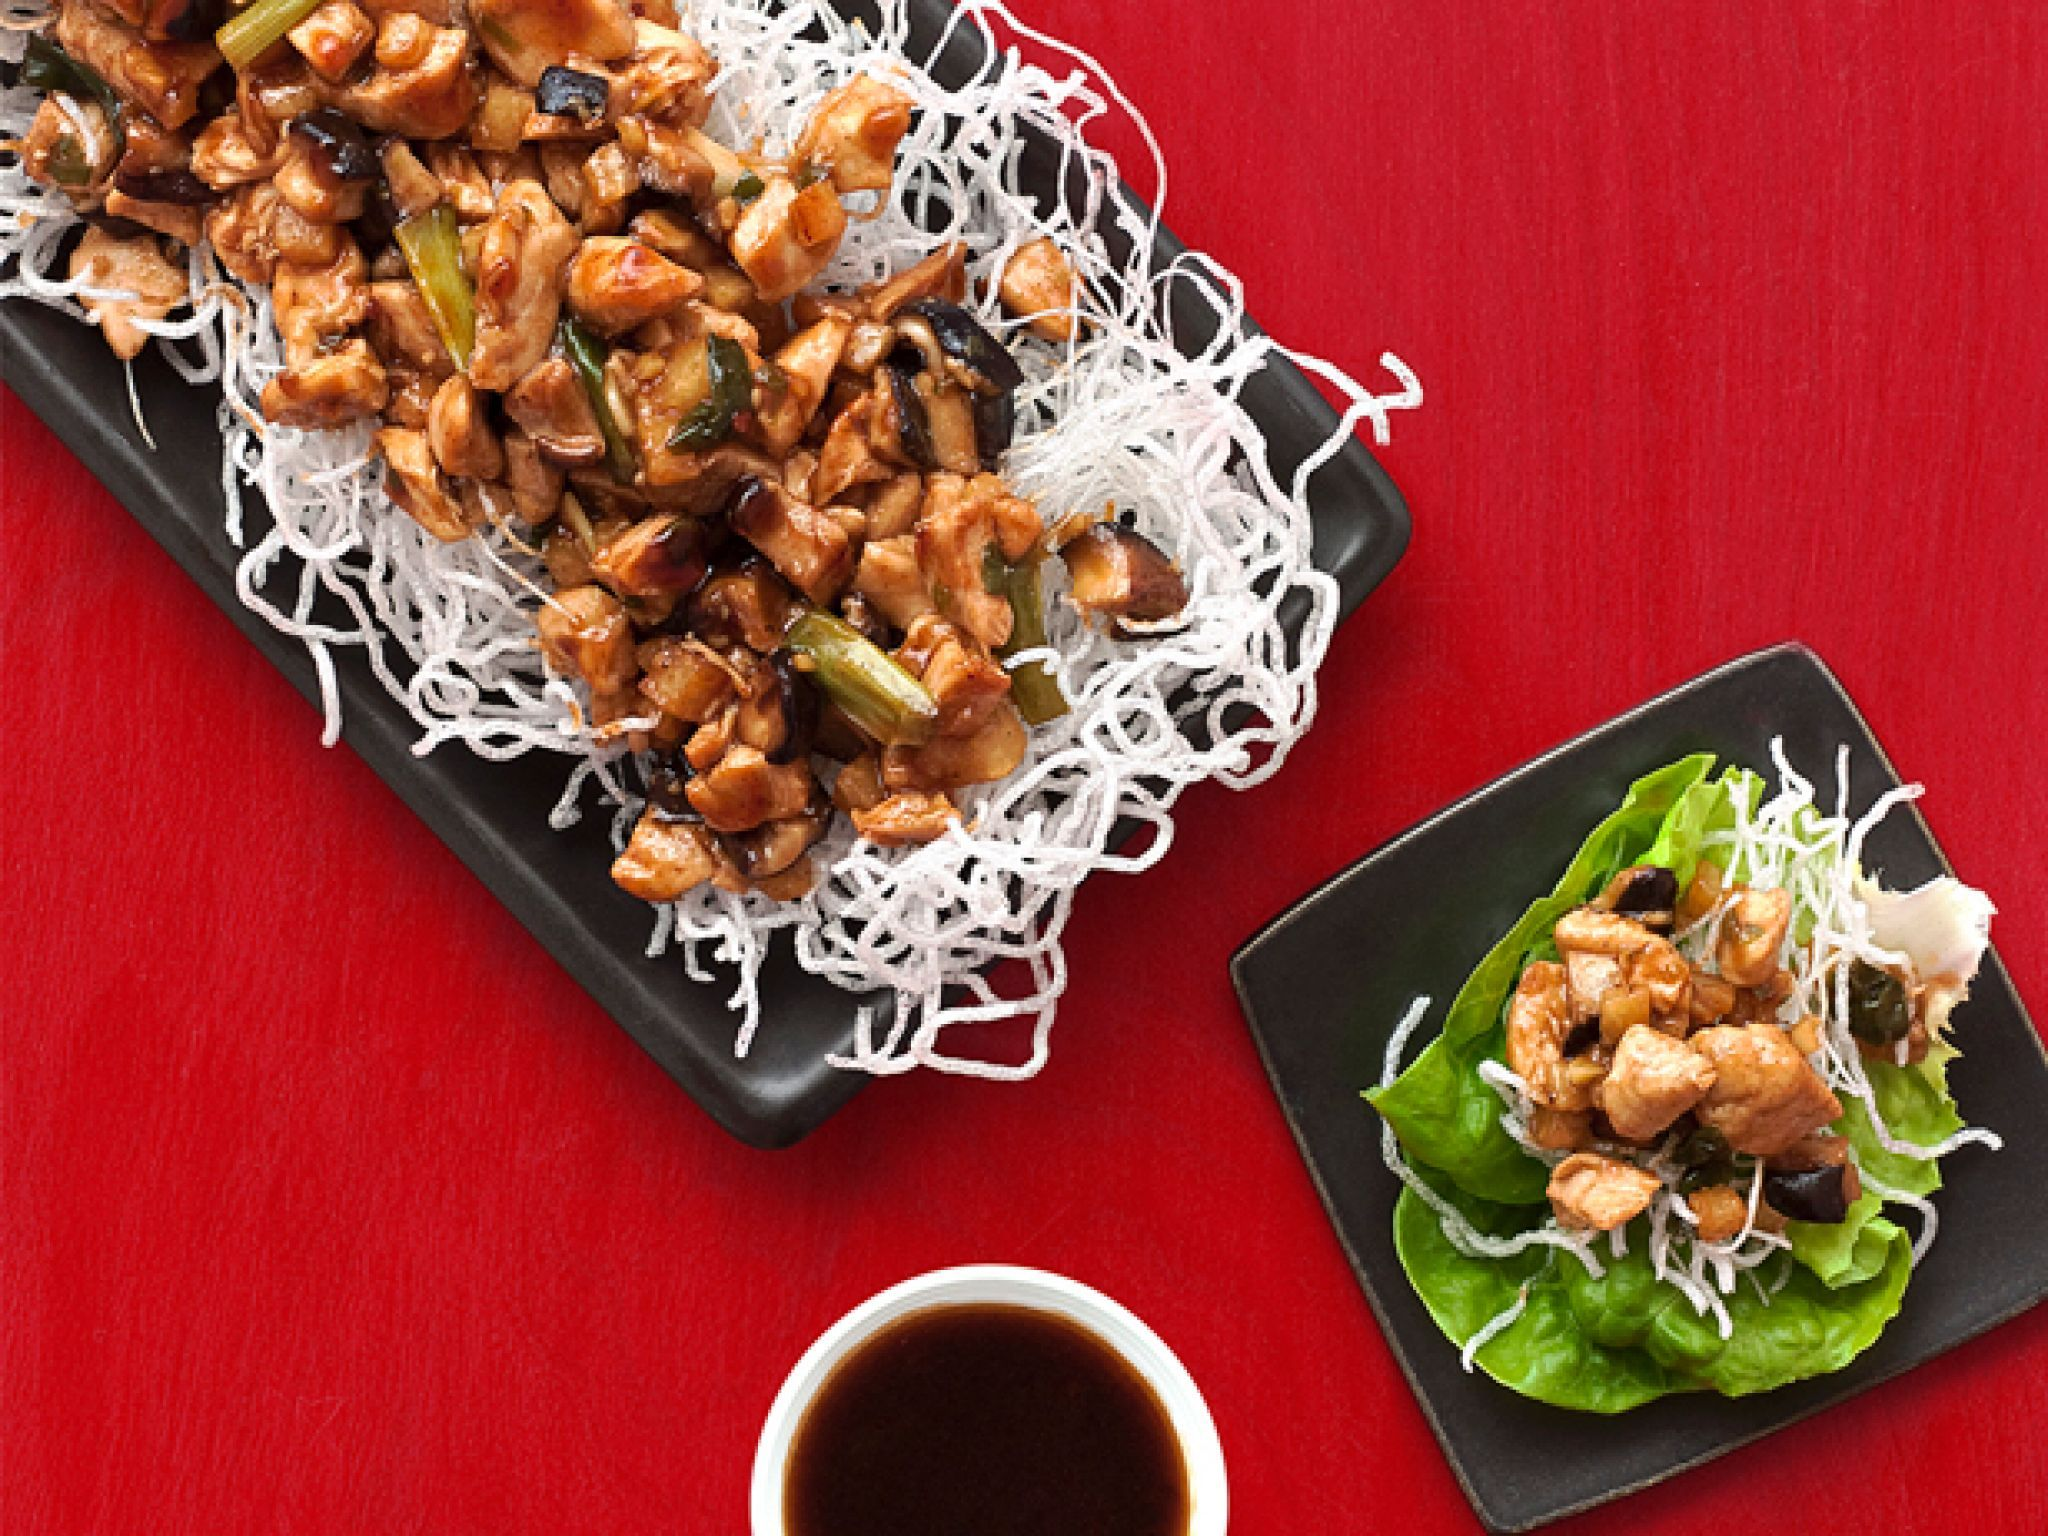 Almost famous chicken lettuce wraps recipe chicken lettuce wraps almost famous chicken lettuce wraps recipe chicken lettuce wraps lettuce and wraps forumfinder Image collections